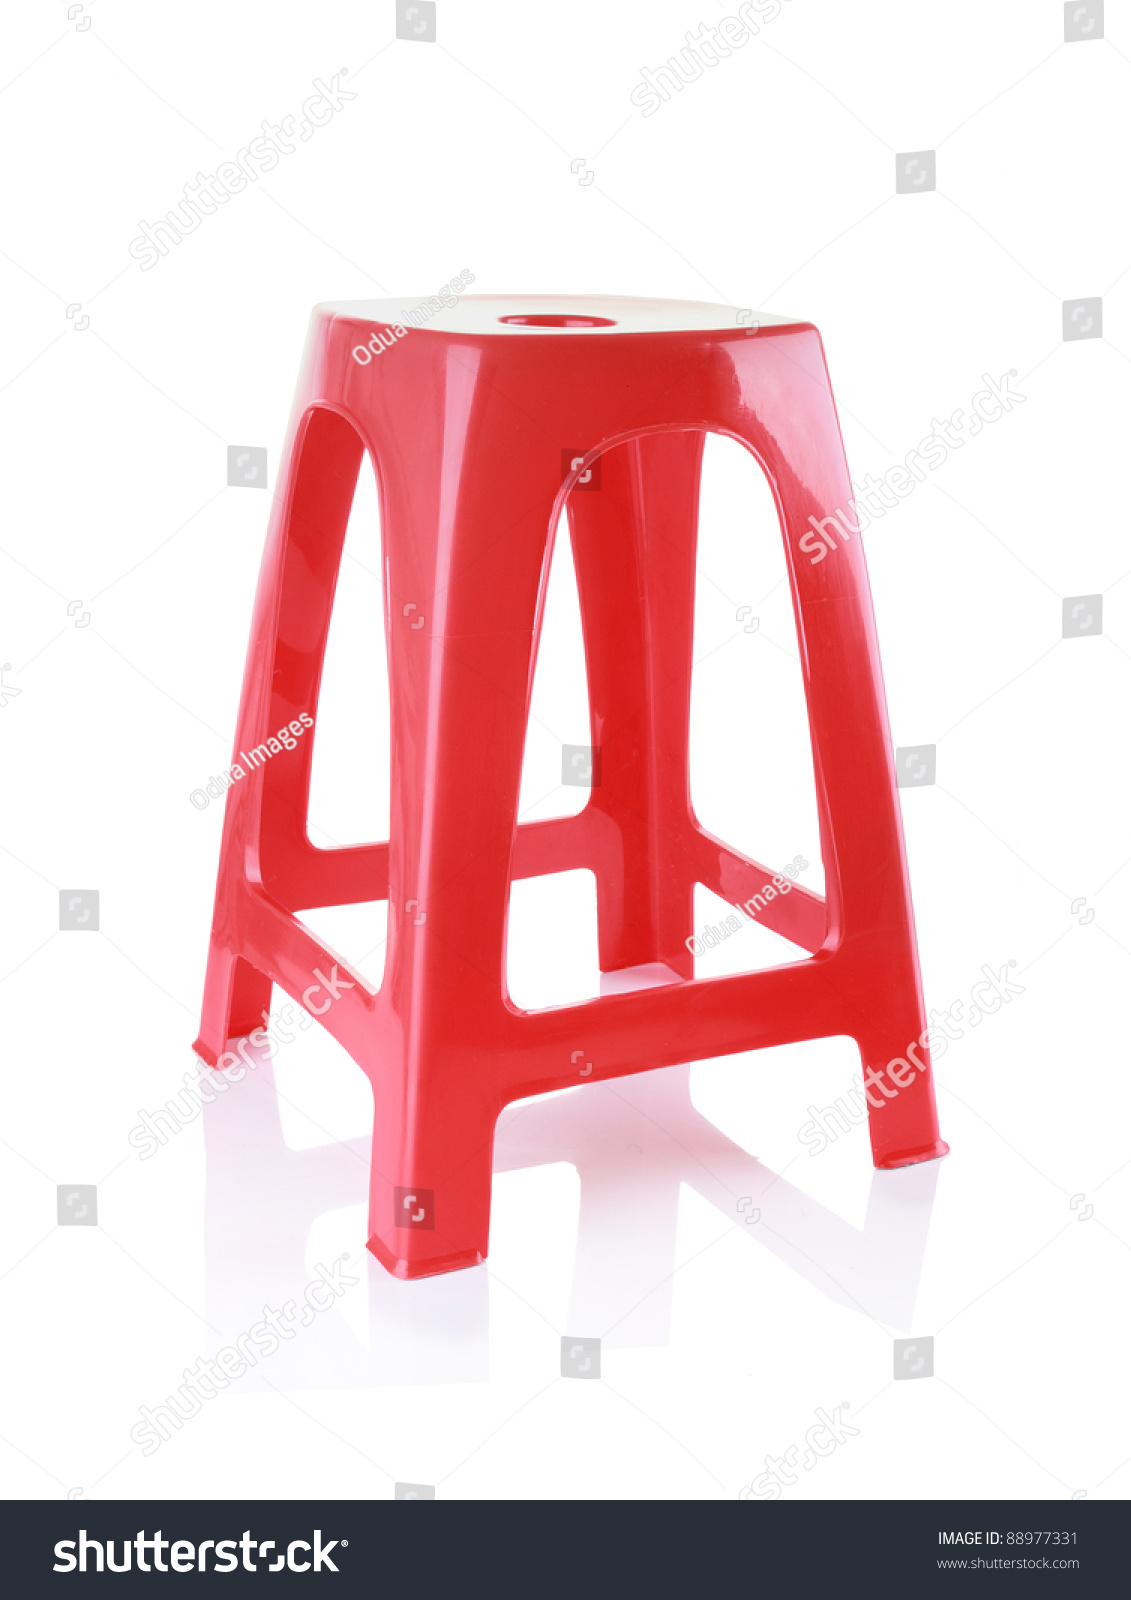 red plastic chair isolated on white background - Plastic Chair